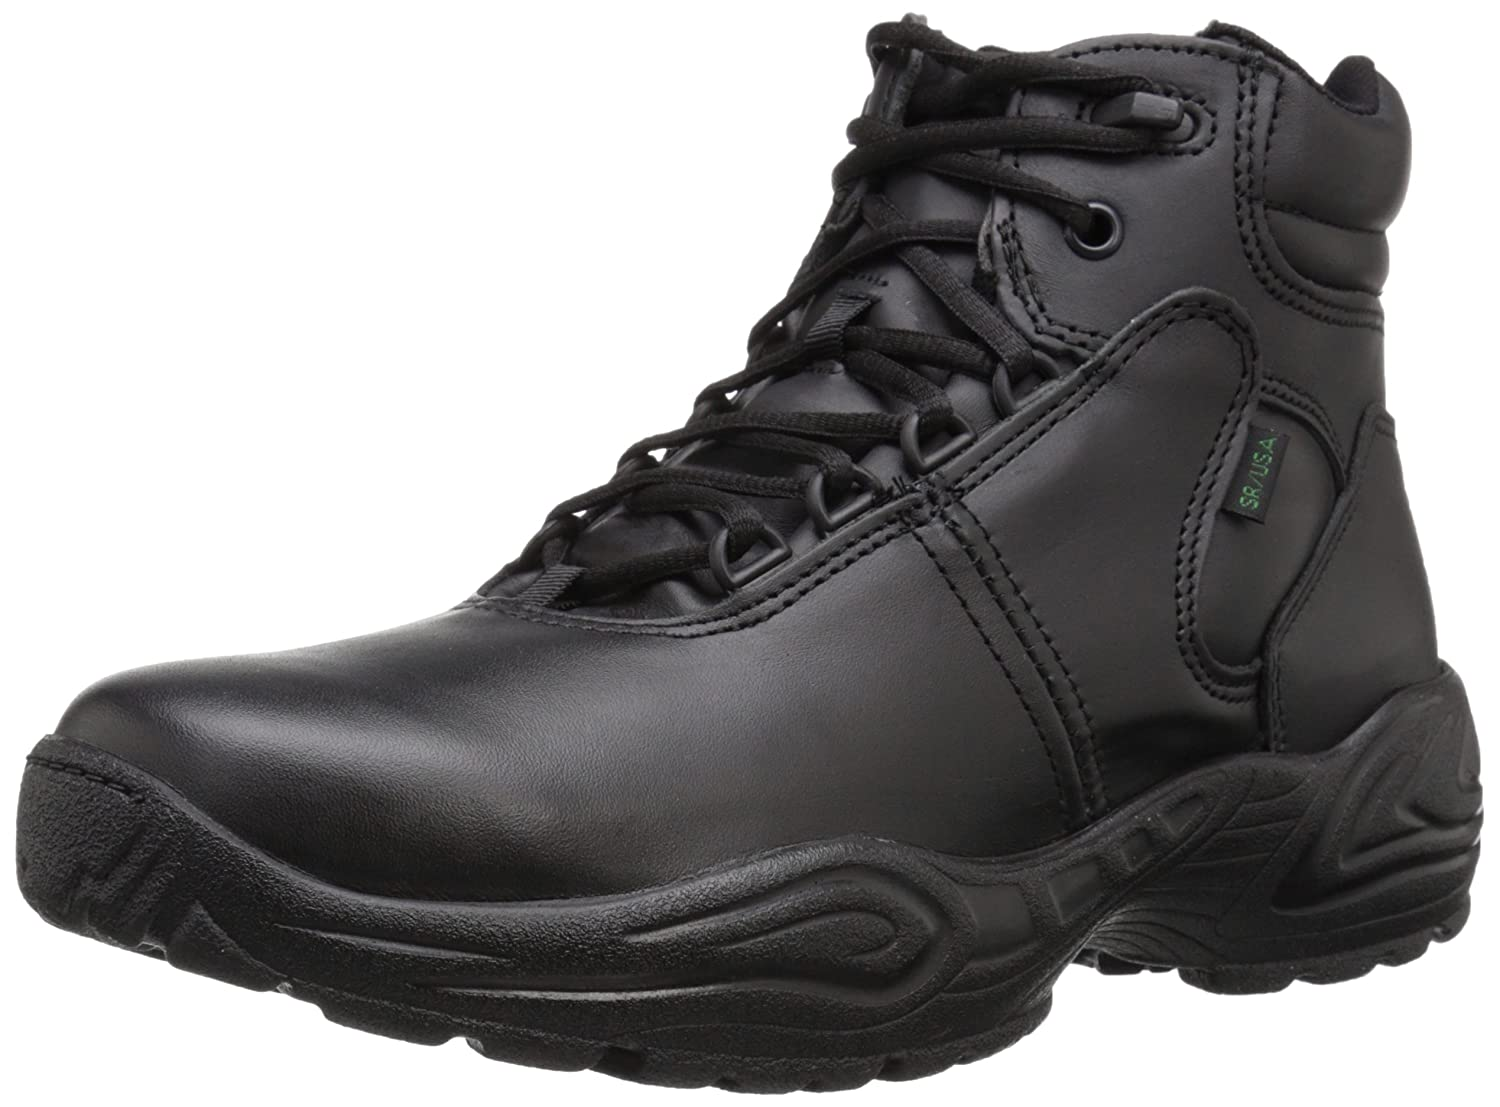 Reebok WorkメンズPostal Express cp8500 Work Boot B000M3B25C 10 2E US|ブラック ブラック 10 2E US